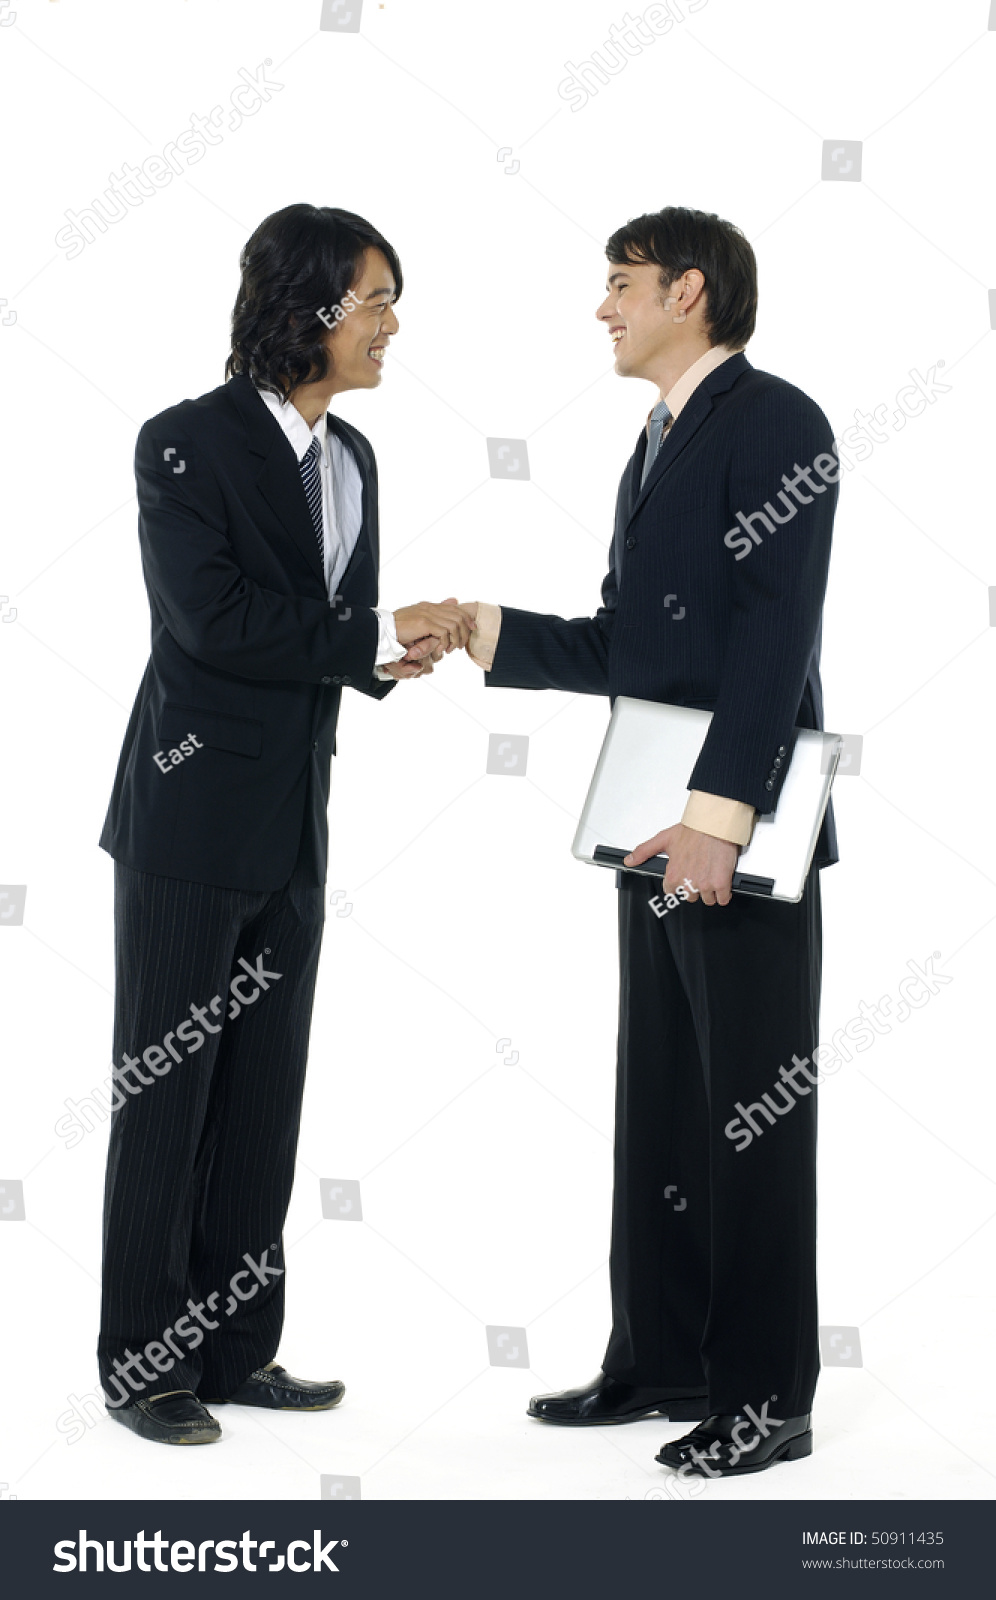 Isolated Studio Shot Of Two Businessmen Shaking Hands In A Warm